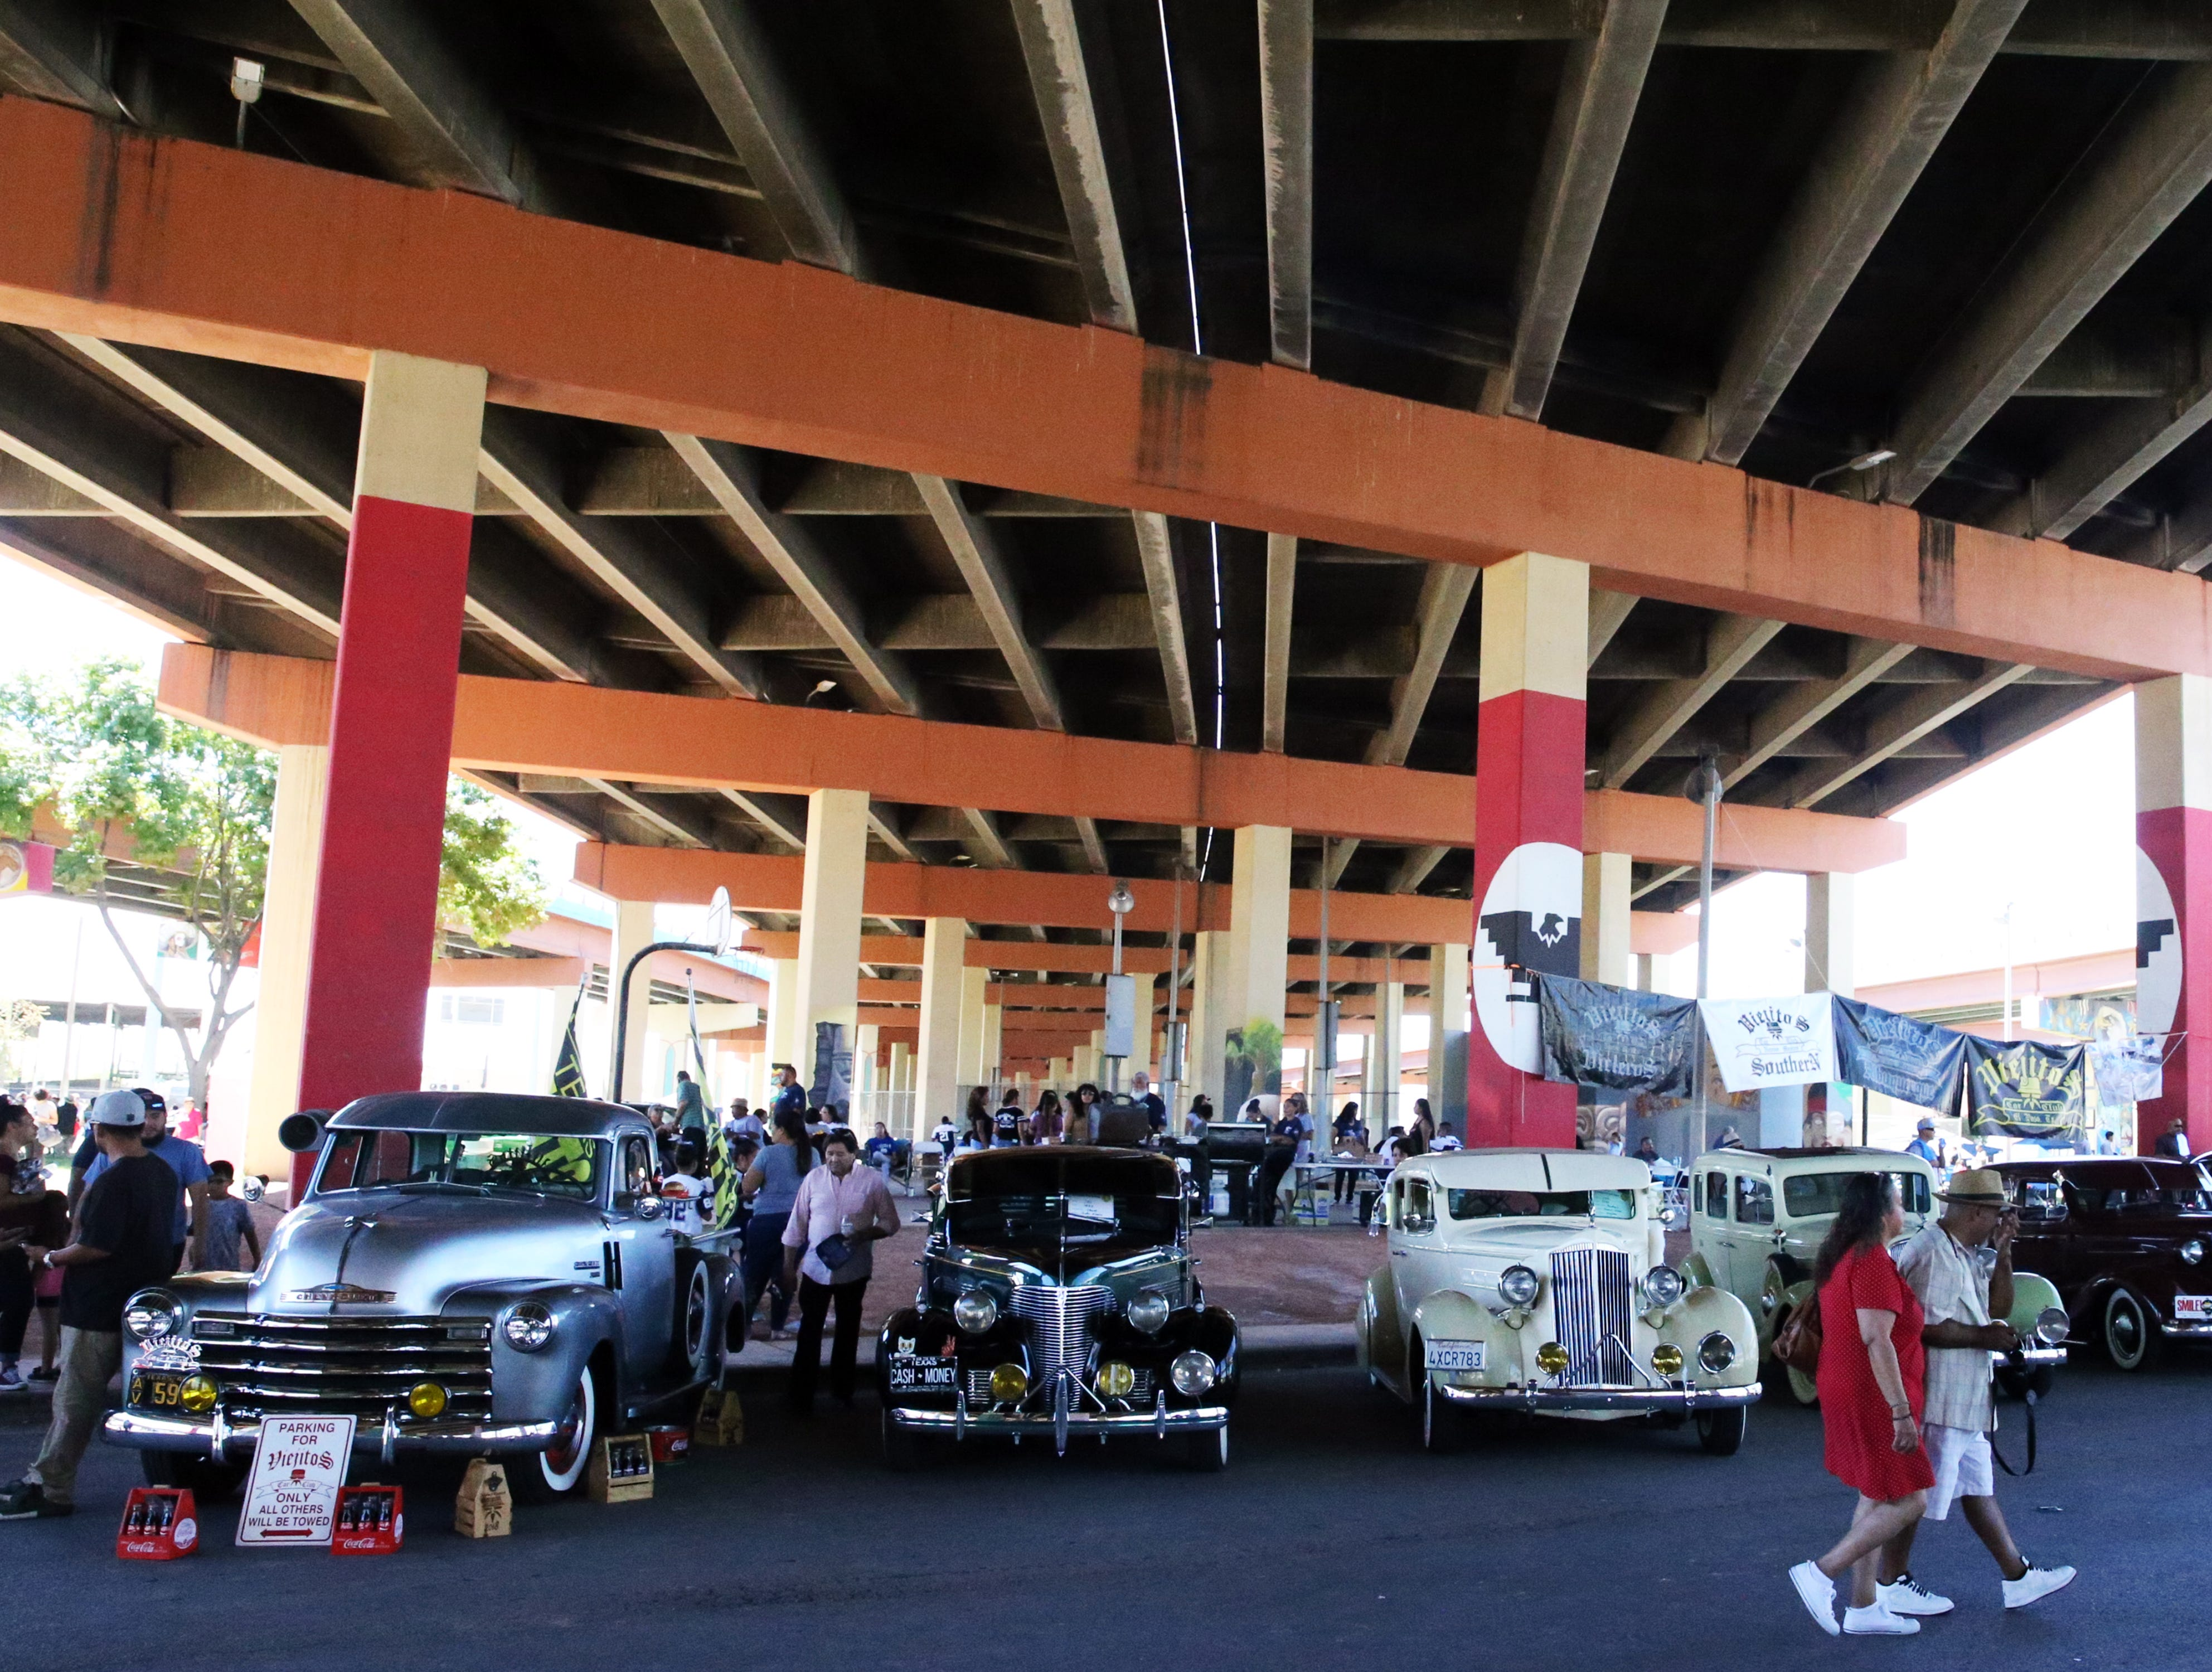 """Classic cars line Durazno Ave. below the overpasses at Lincoln Park during the 14th Annual Lincoln Park Day car show Sunday. Hector Gonzalez of the Lincoln Park Conservation Committee said over 200 cars and motorcycles registered for the event and expected to see between 4 and 5 thousand people attend. The event celebrates the Mexican-American, Chicano and Indigenous culture, its history and traditions, Gonzalez said. El Paso car clubs were joined by clubs from Los Angeles, San Diego, Phoenix, Albuquerque, Oklahoma City, San Antonio and other places. Several Matachines groups paraded around the park. Chris Melendez of Odessa, TX brought along his customized 3-time Lowrider Magazine World Champion """"Bomb of the Year"""" 1951 Chevy Deluxe called 'Blvd. Bully.' People crowded around the car to view its intricate paint work and heavily chromed engine and other components. The event was free to the public. Car registration proceeds go back to the park to fund events like the car show, create murals and for other expenses, Gonzalez said."""